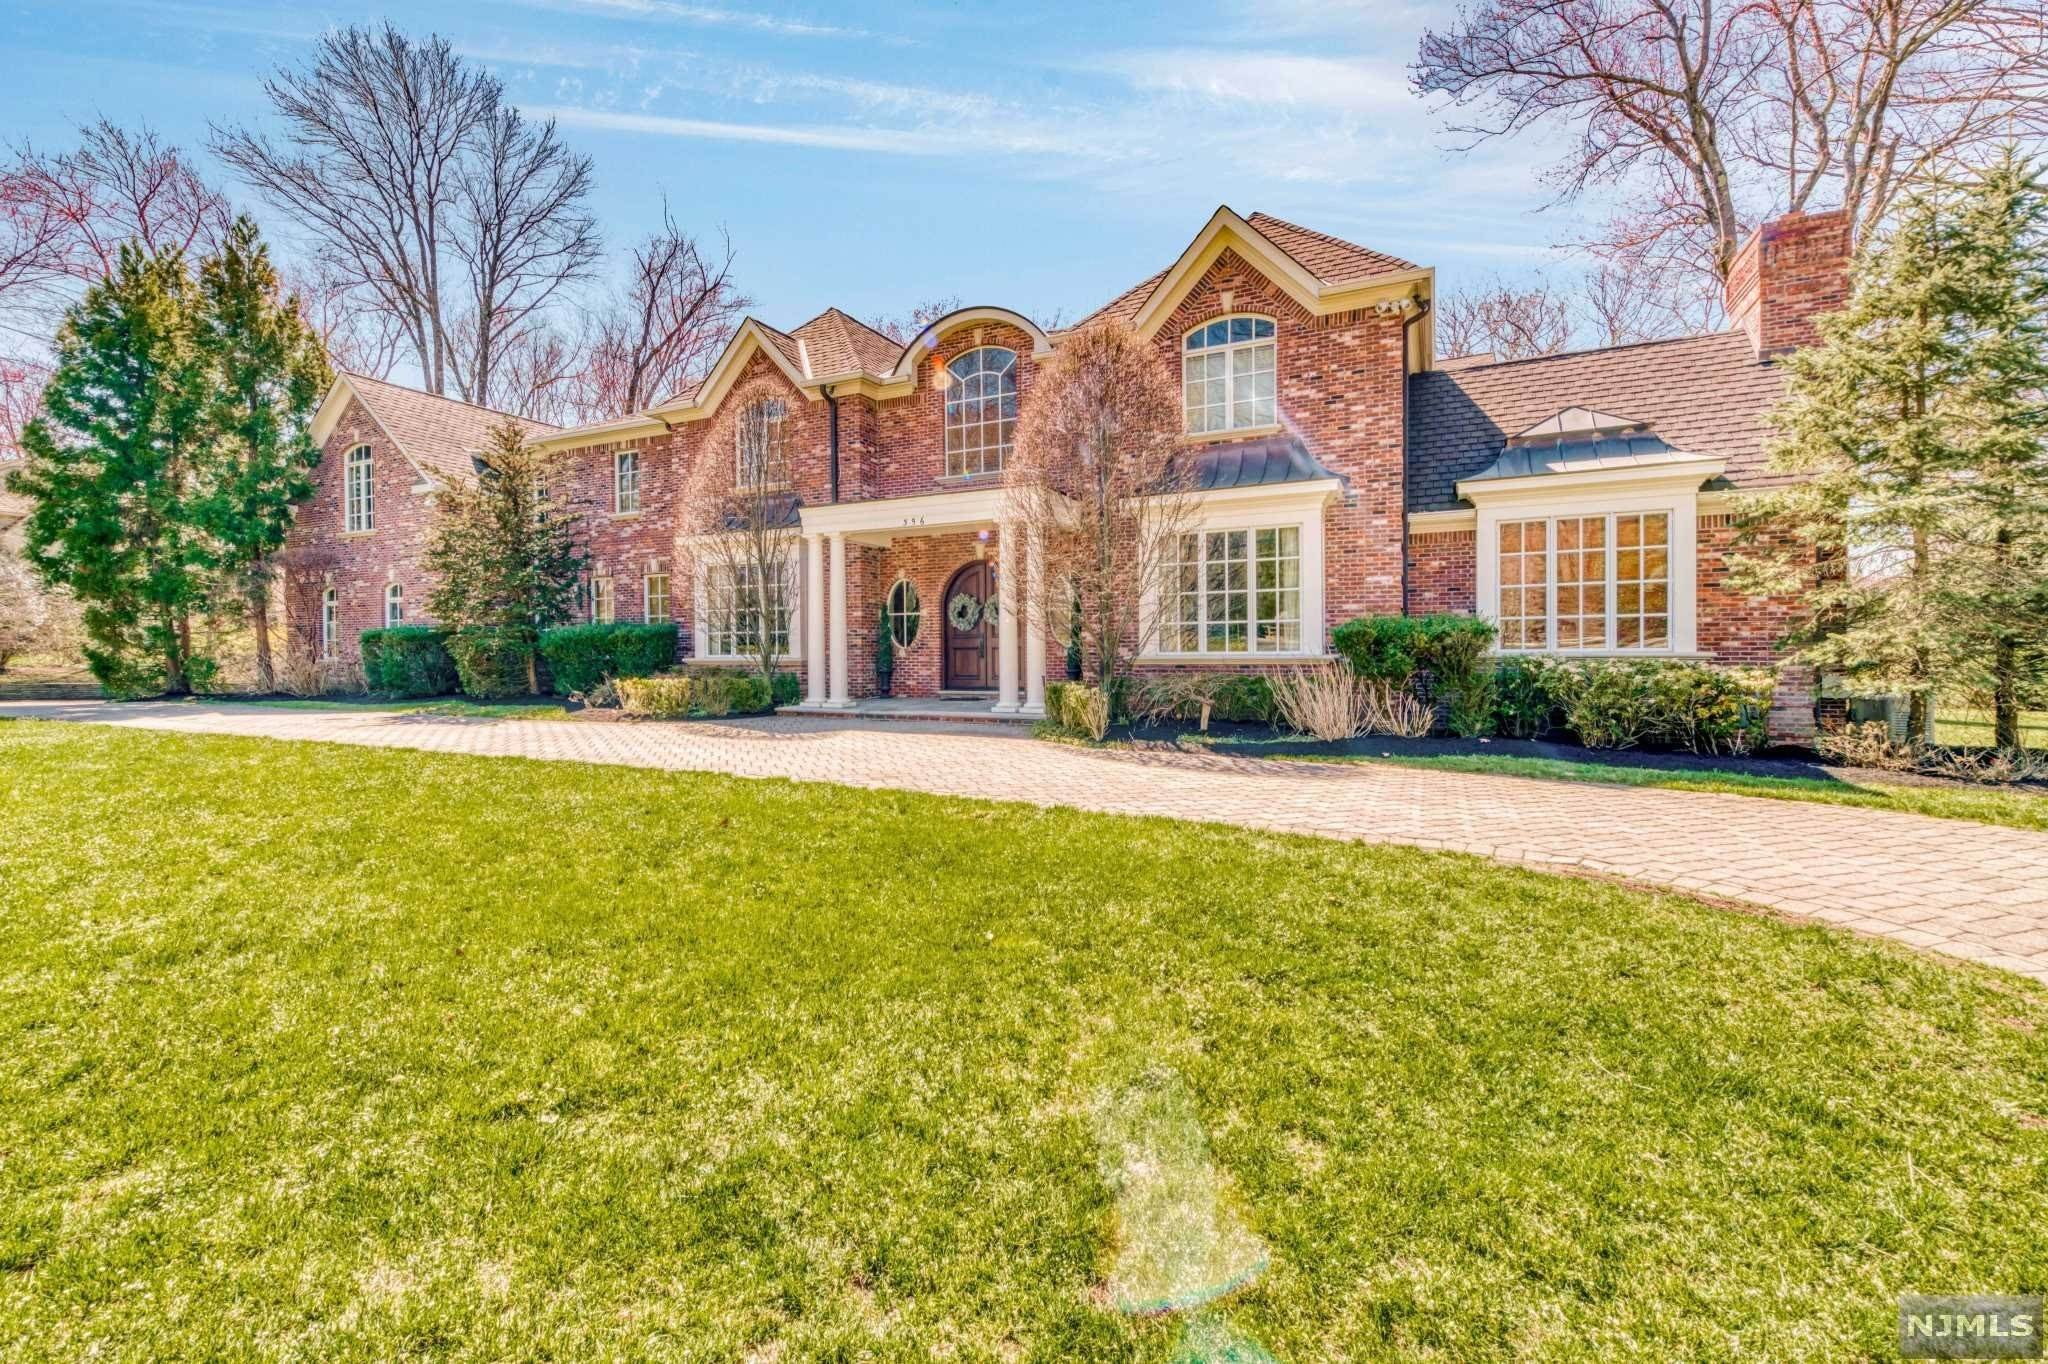 Single Family Home for Sale at 356 Indian Trail Drive Franklin Lakes, New Jersey,07417 United States